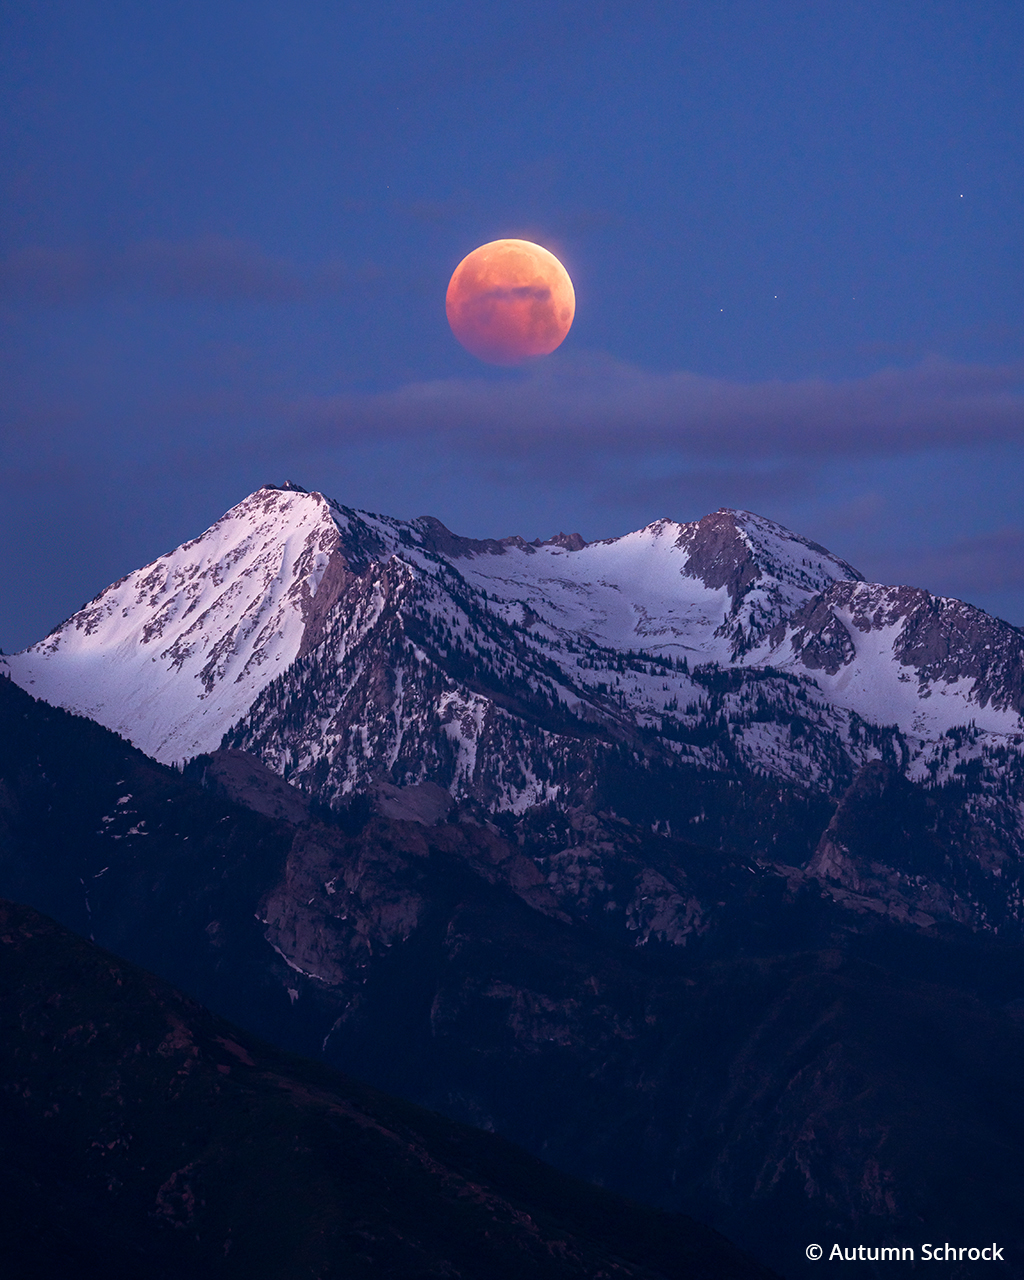 Photograph of the moon during a lunar eclipse event.